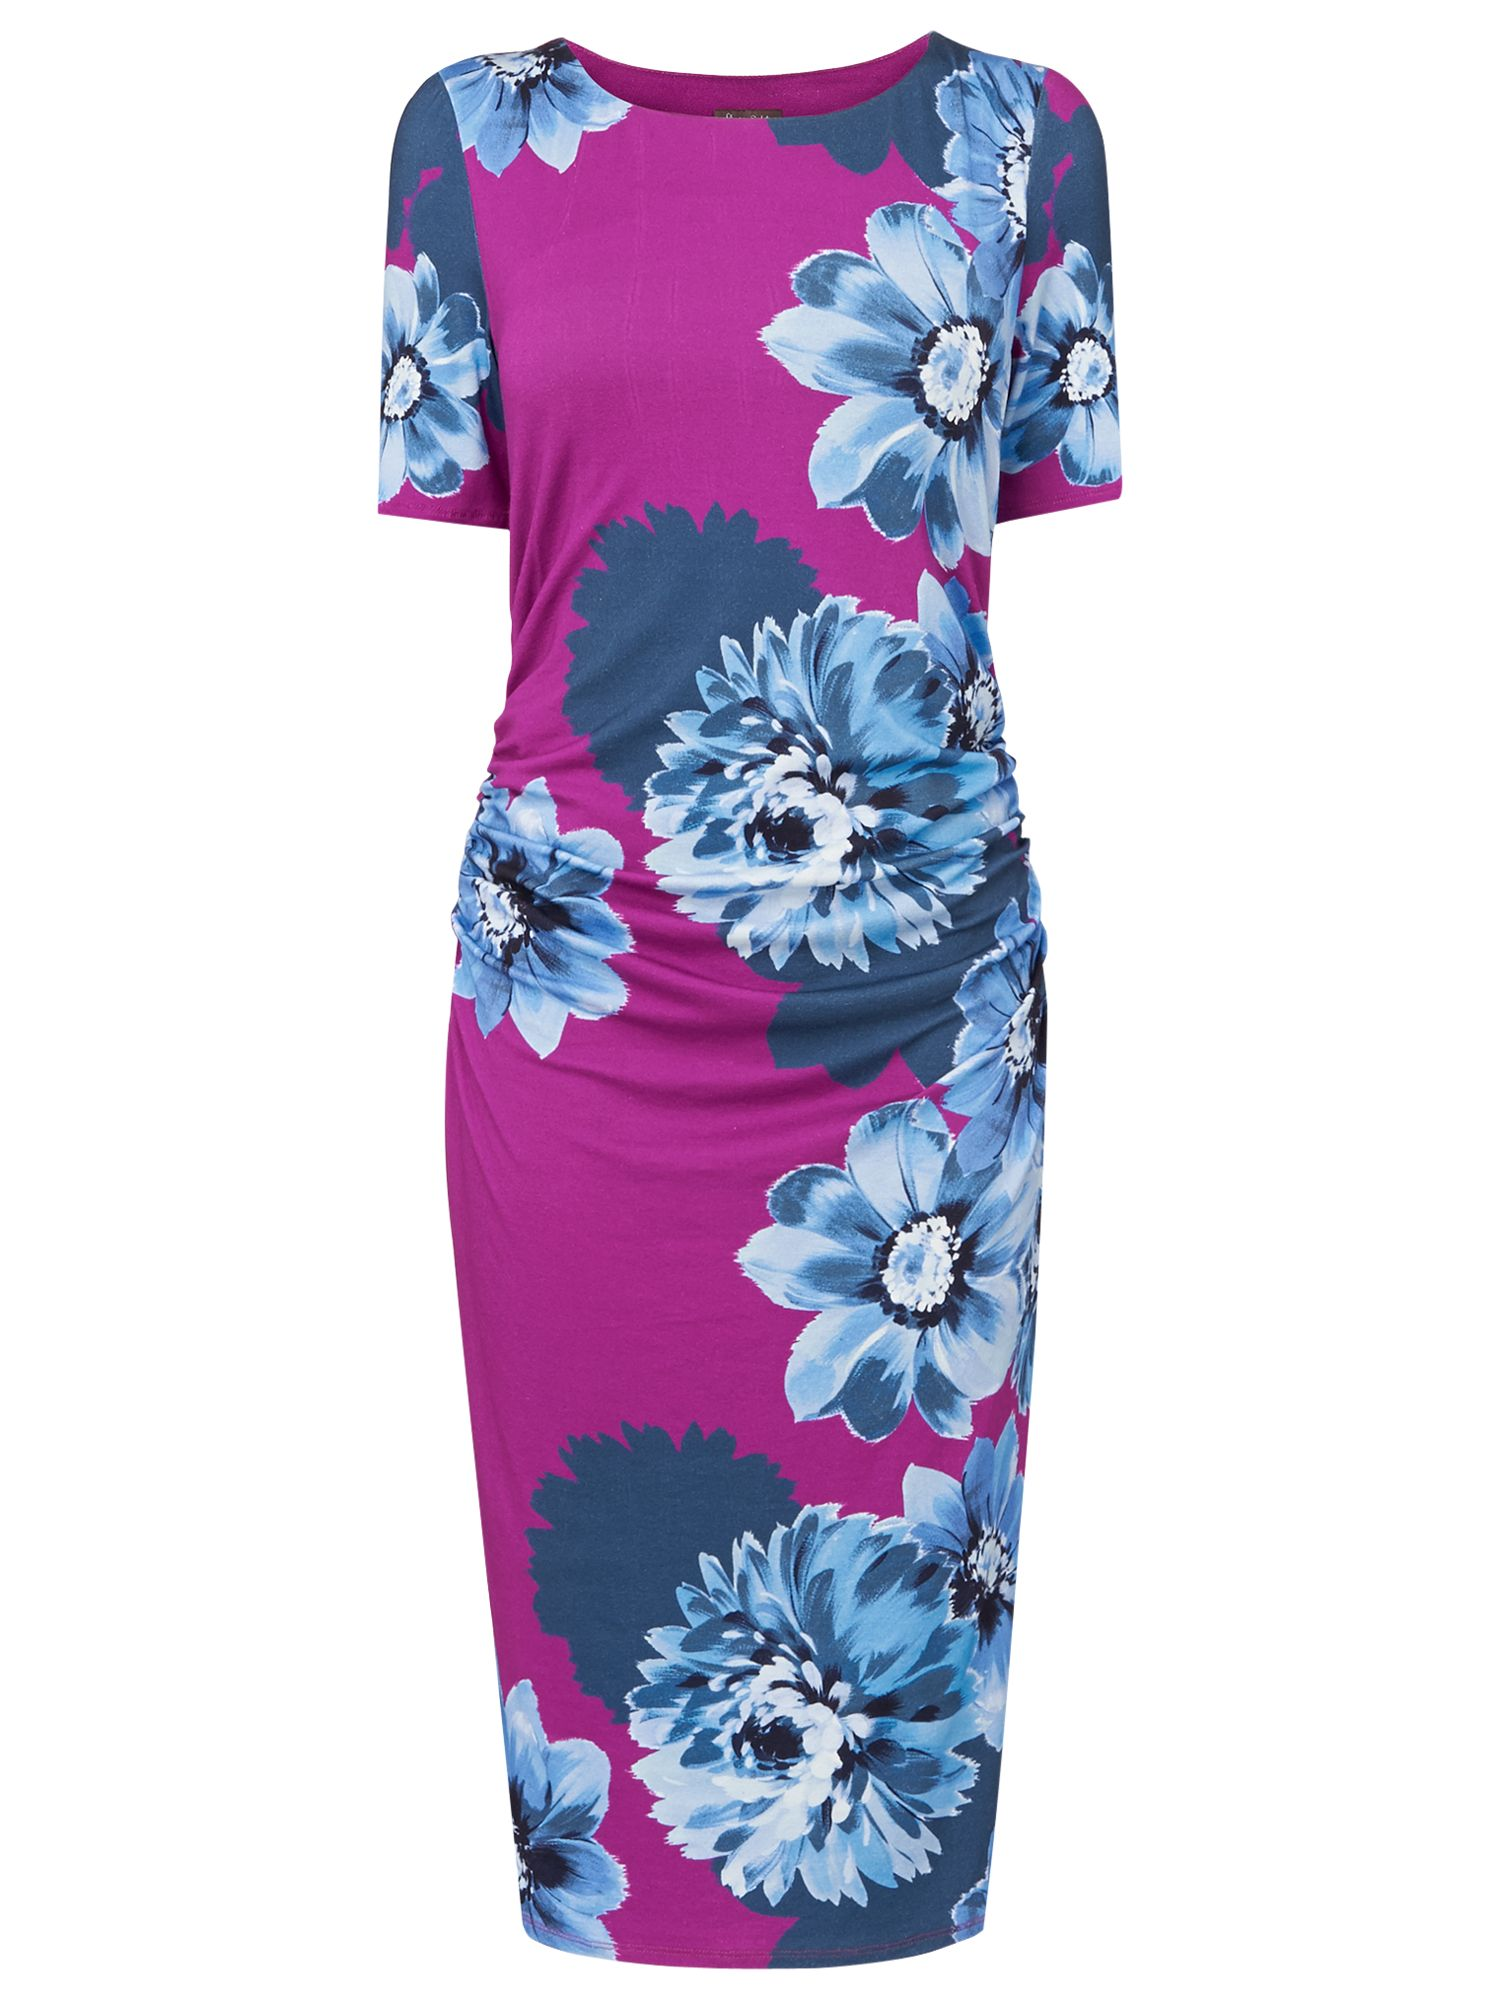 phase eight fraya placement floral dress petunia, phase, eight, fraya, placement, floral, dress, petunia, phase eight, 12 10 14 18 16 8, women, womens dresses, gifts, wedding, wedding clothing, female guests, fashion magazine, brands l-z, inactive womenswear, 1933220